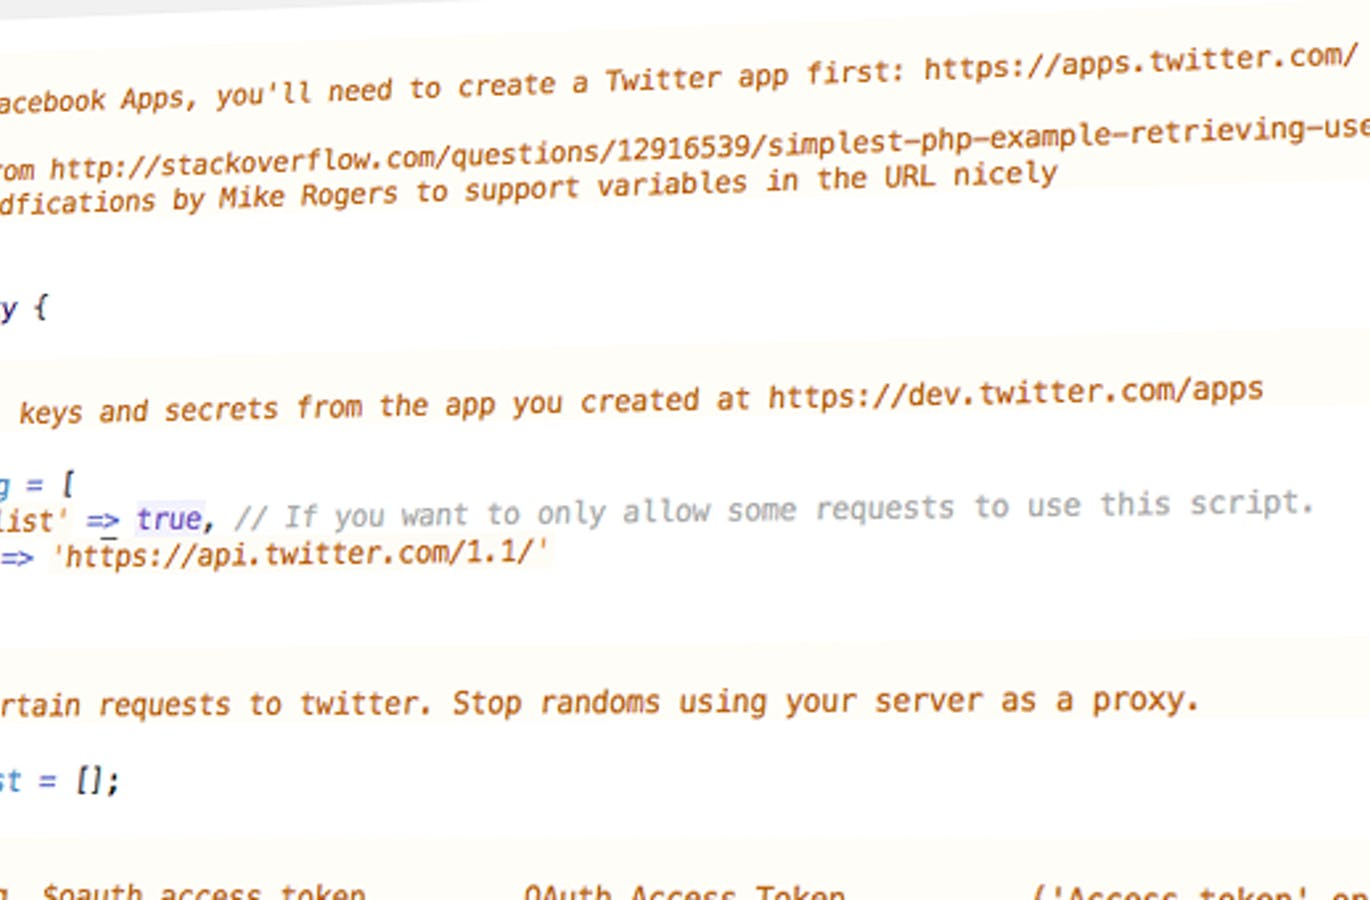 tutorial - retrieving tweets from the twitter v1.1 api using oauth